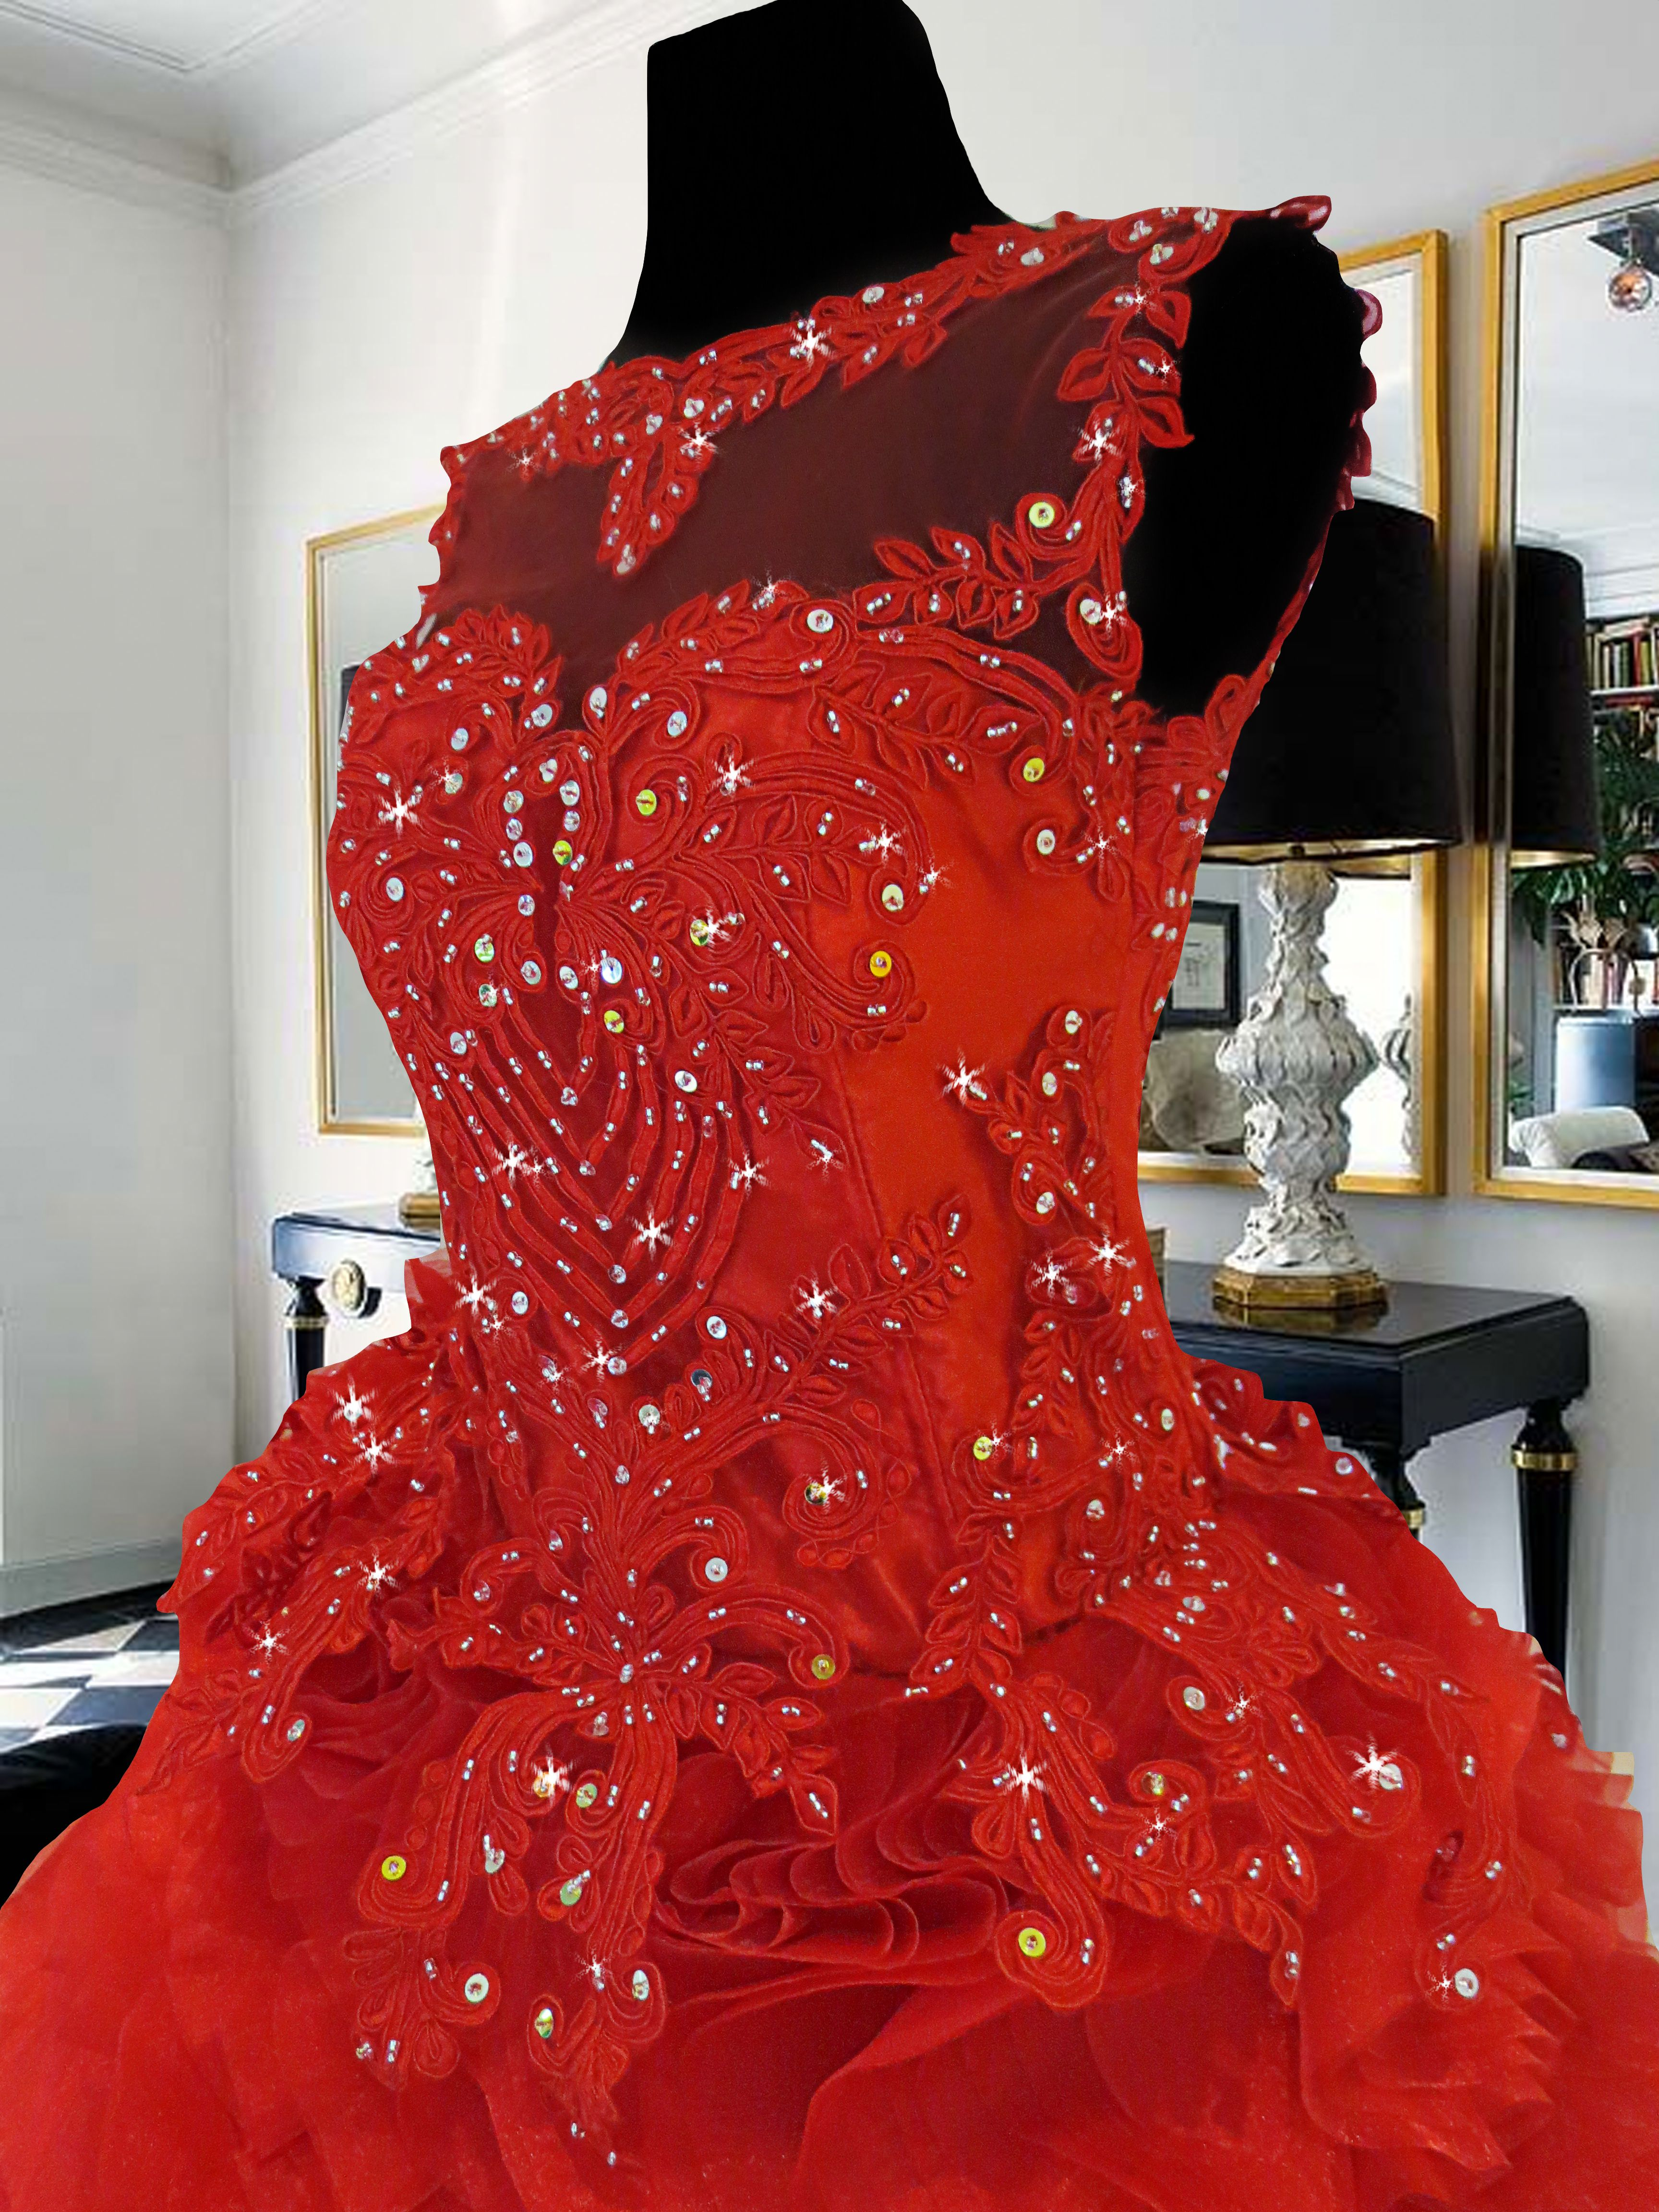 Red Ball Gown With Lace And Beadwork For Rent Php3 000 Www Gownforent Com Debut Flores De Mayo Pageant Sta Cru Cocktail Dress Dress Rental Red Ball Gowns